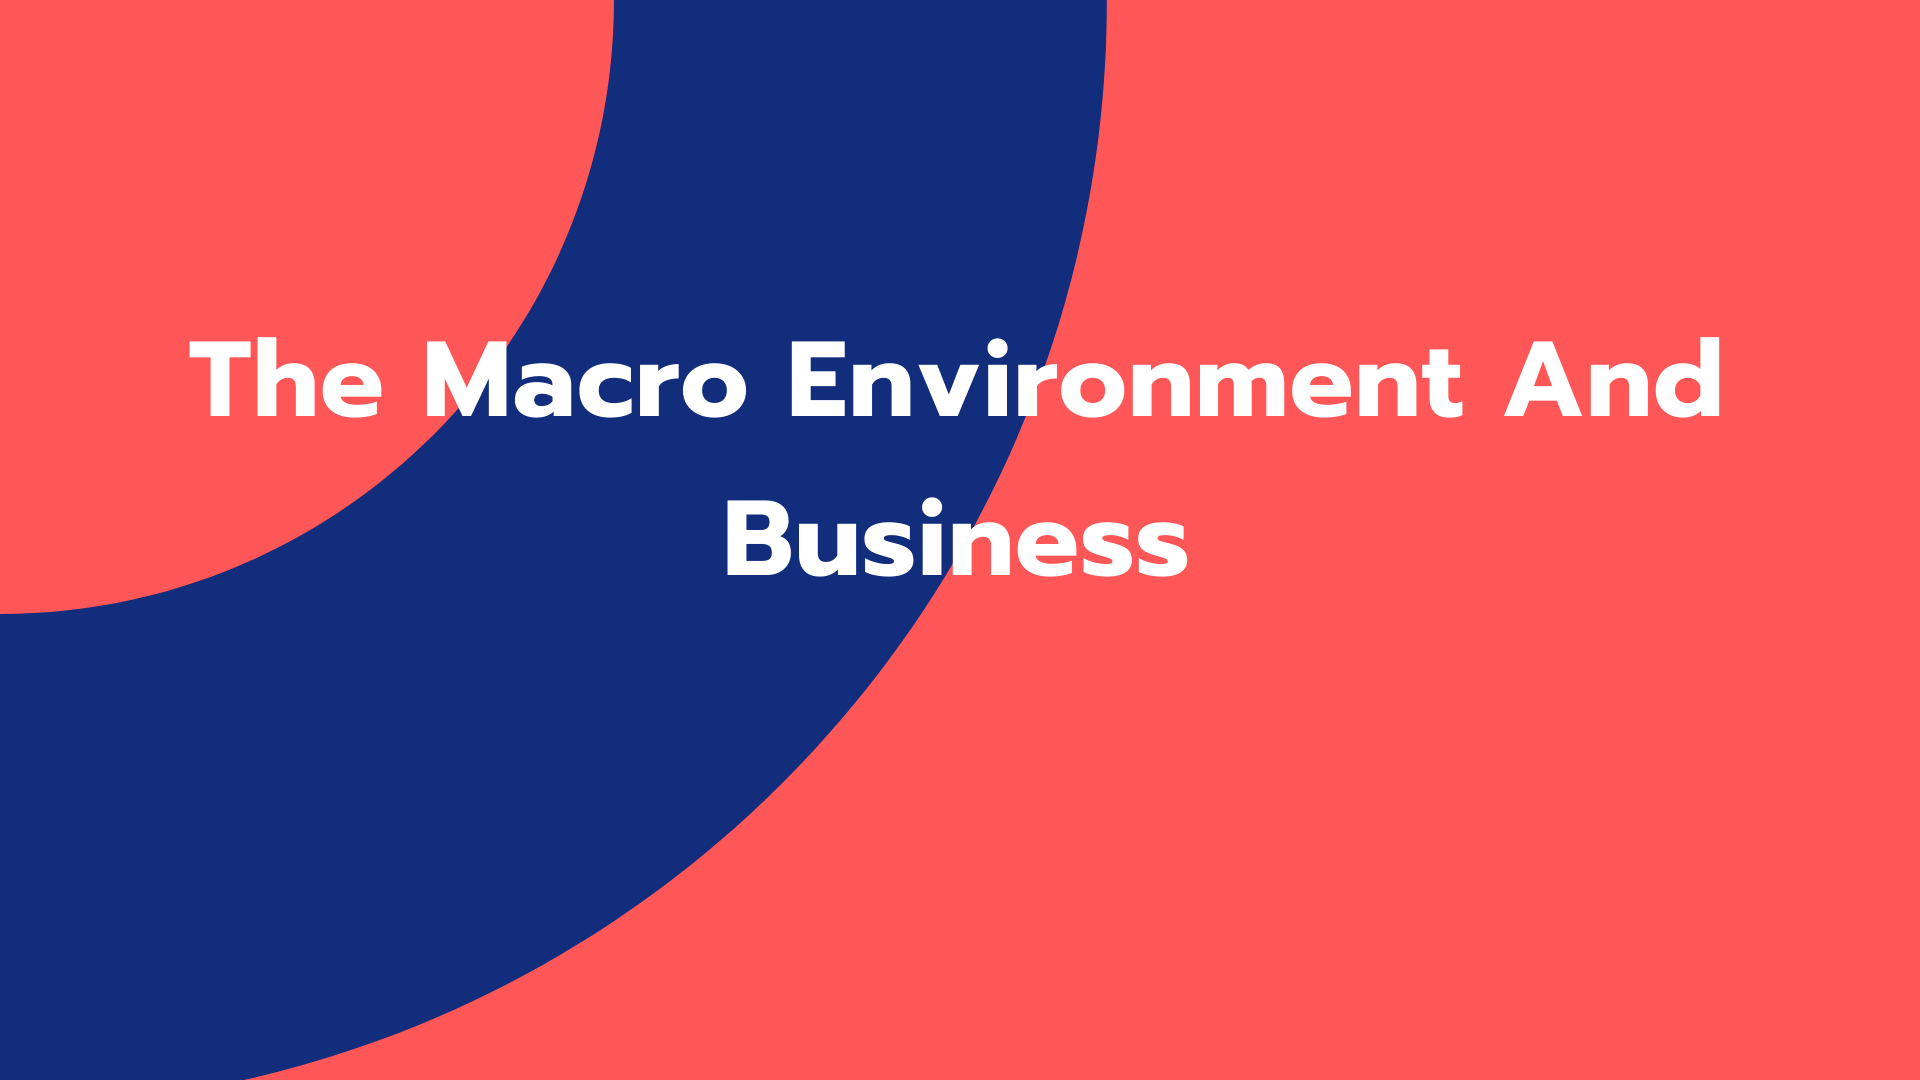 The Macro Environment And Business